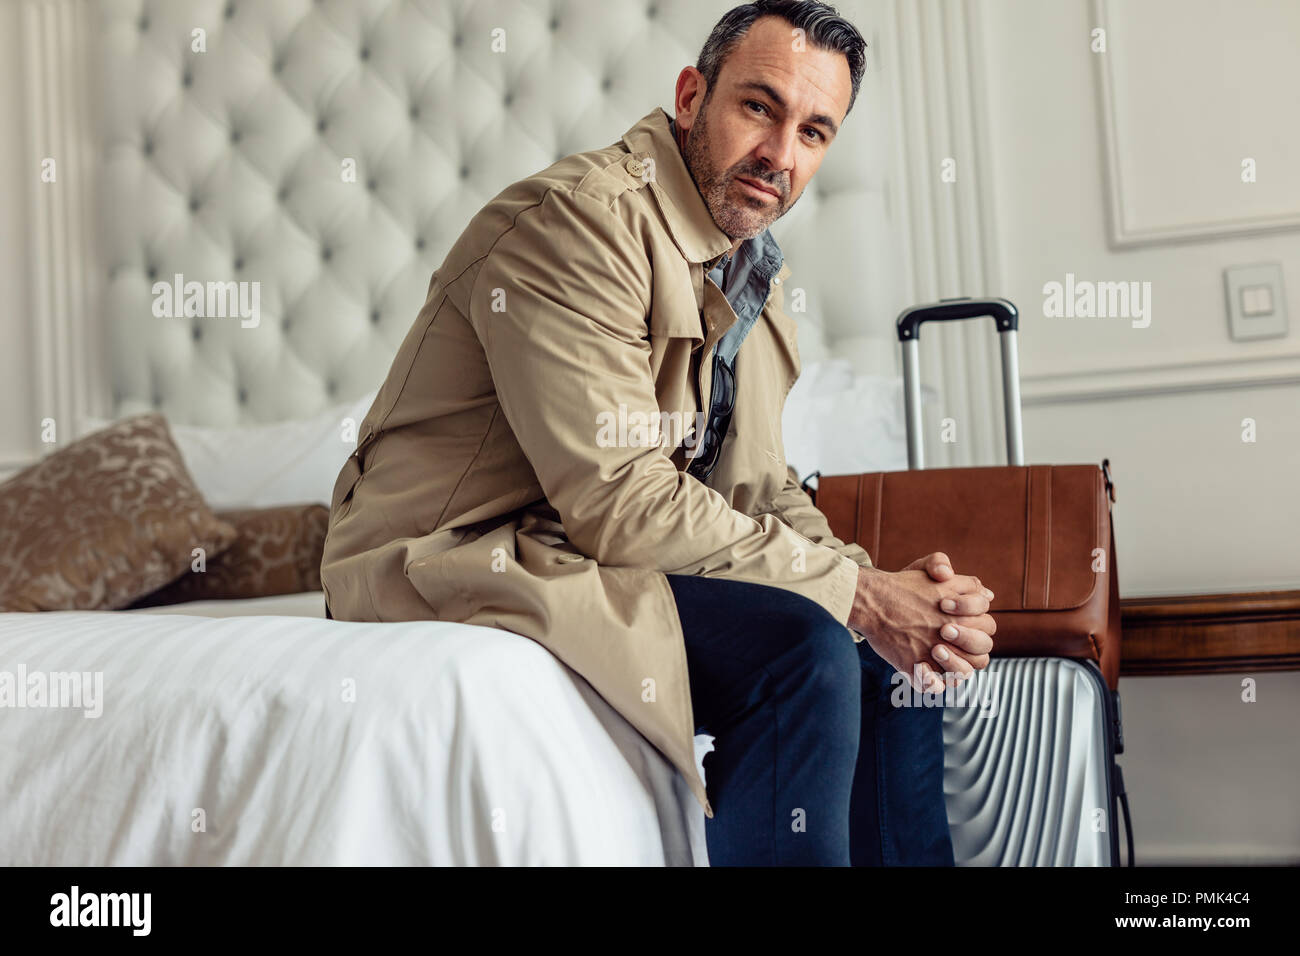 Traveling for work. Handsome mature businessman sitting in his hotel room bed and looking at camera. - Stock Image